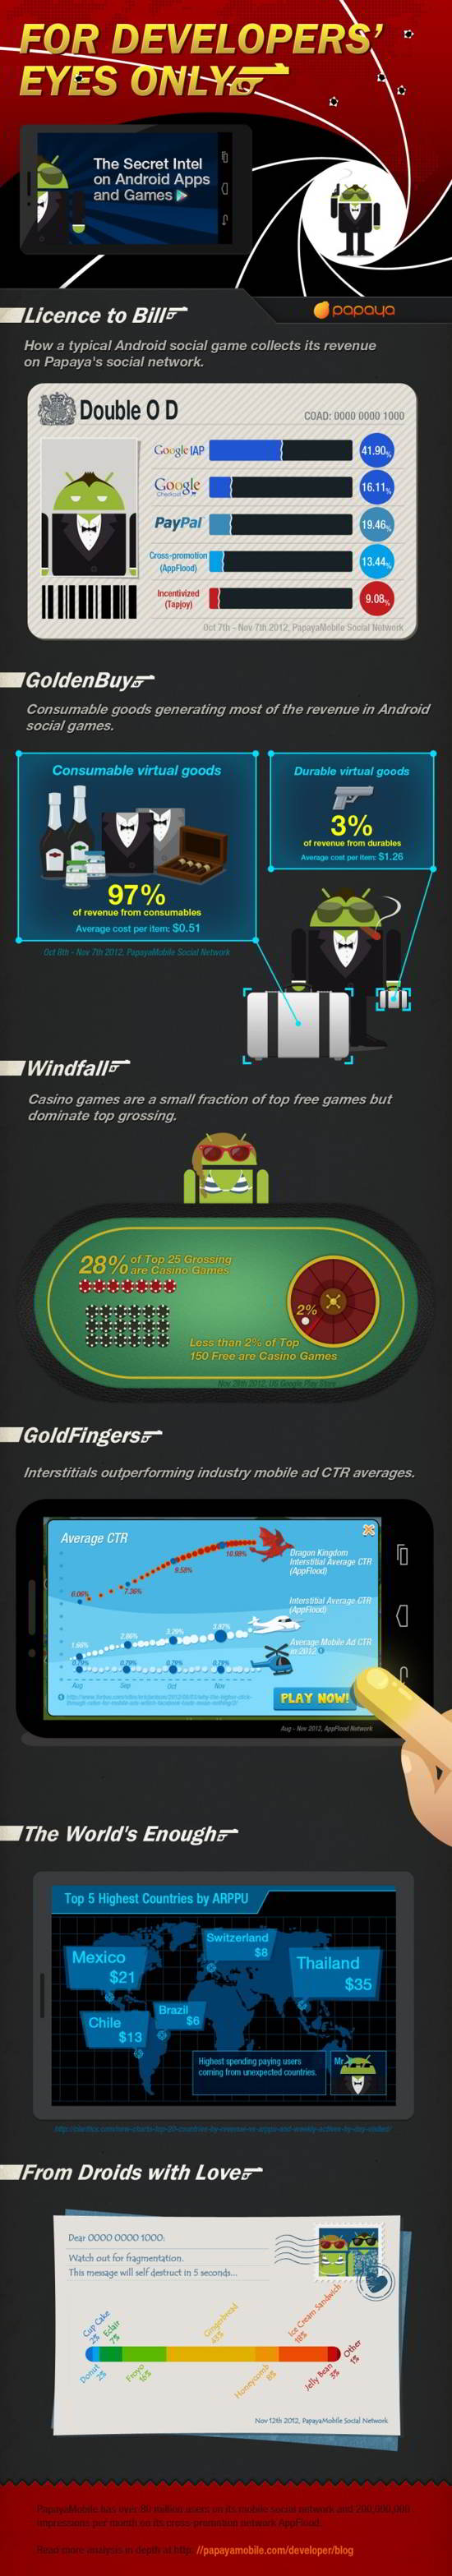 infographic for developers